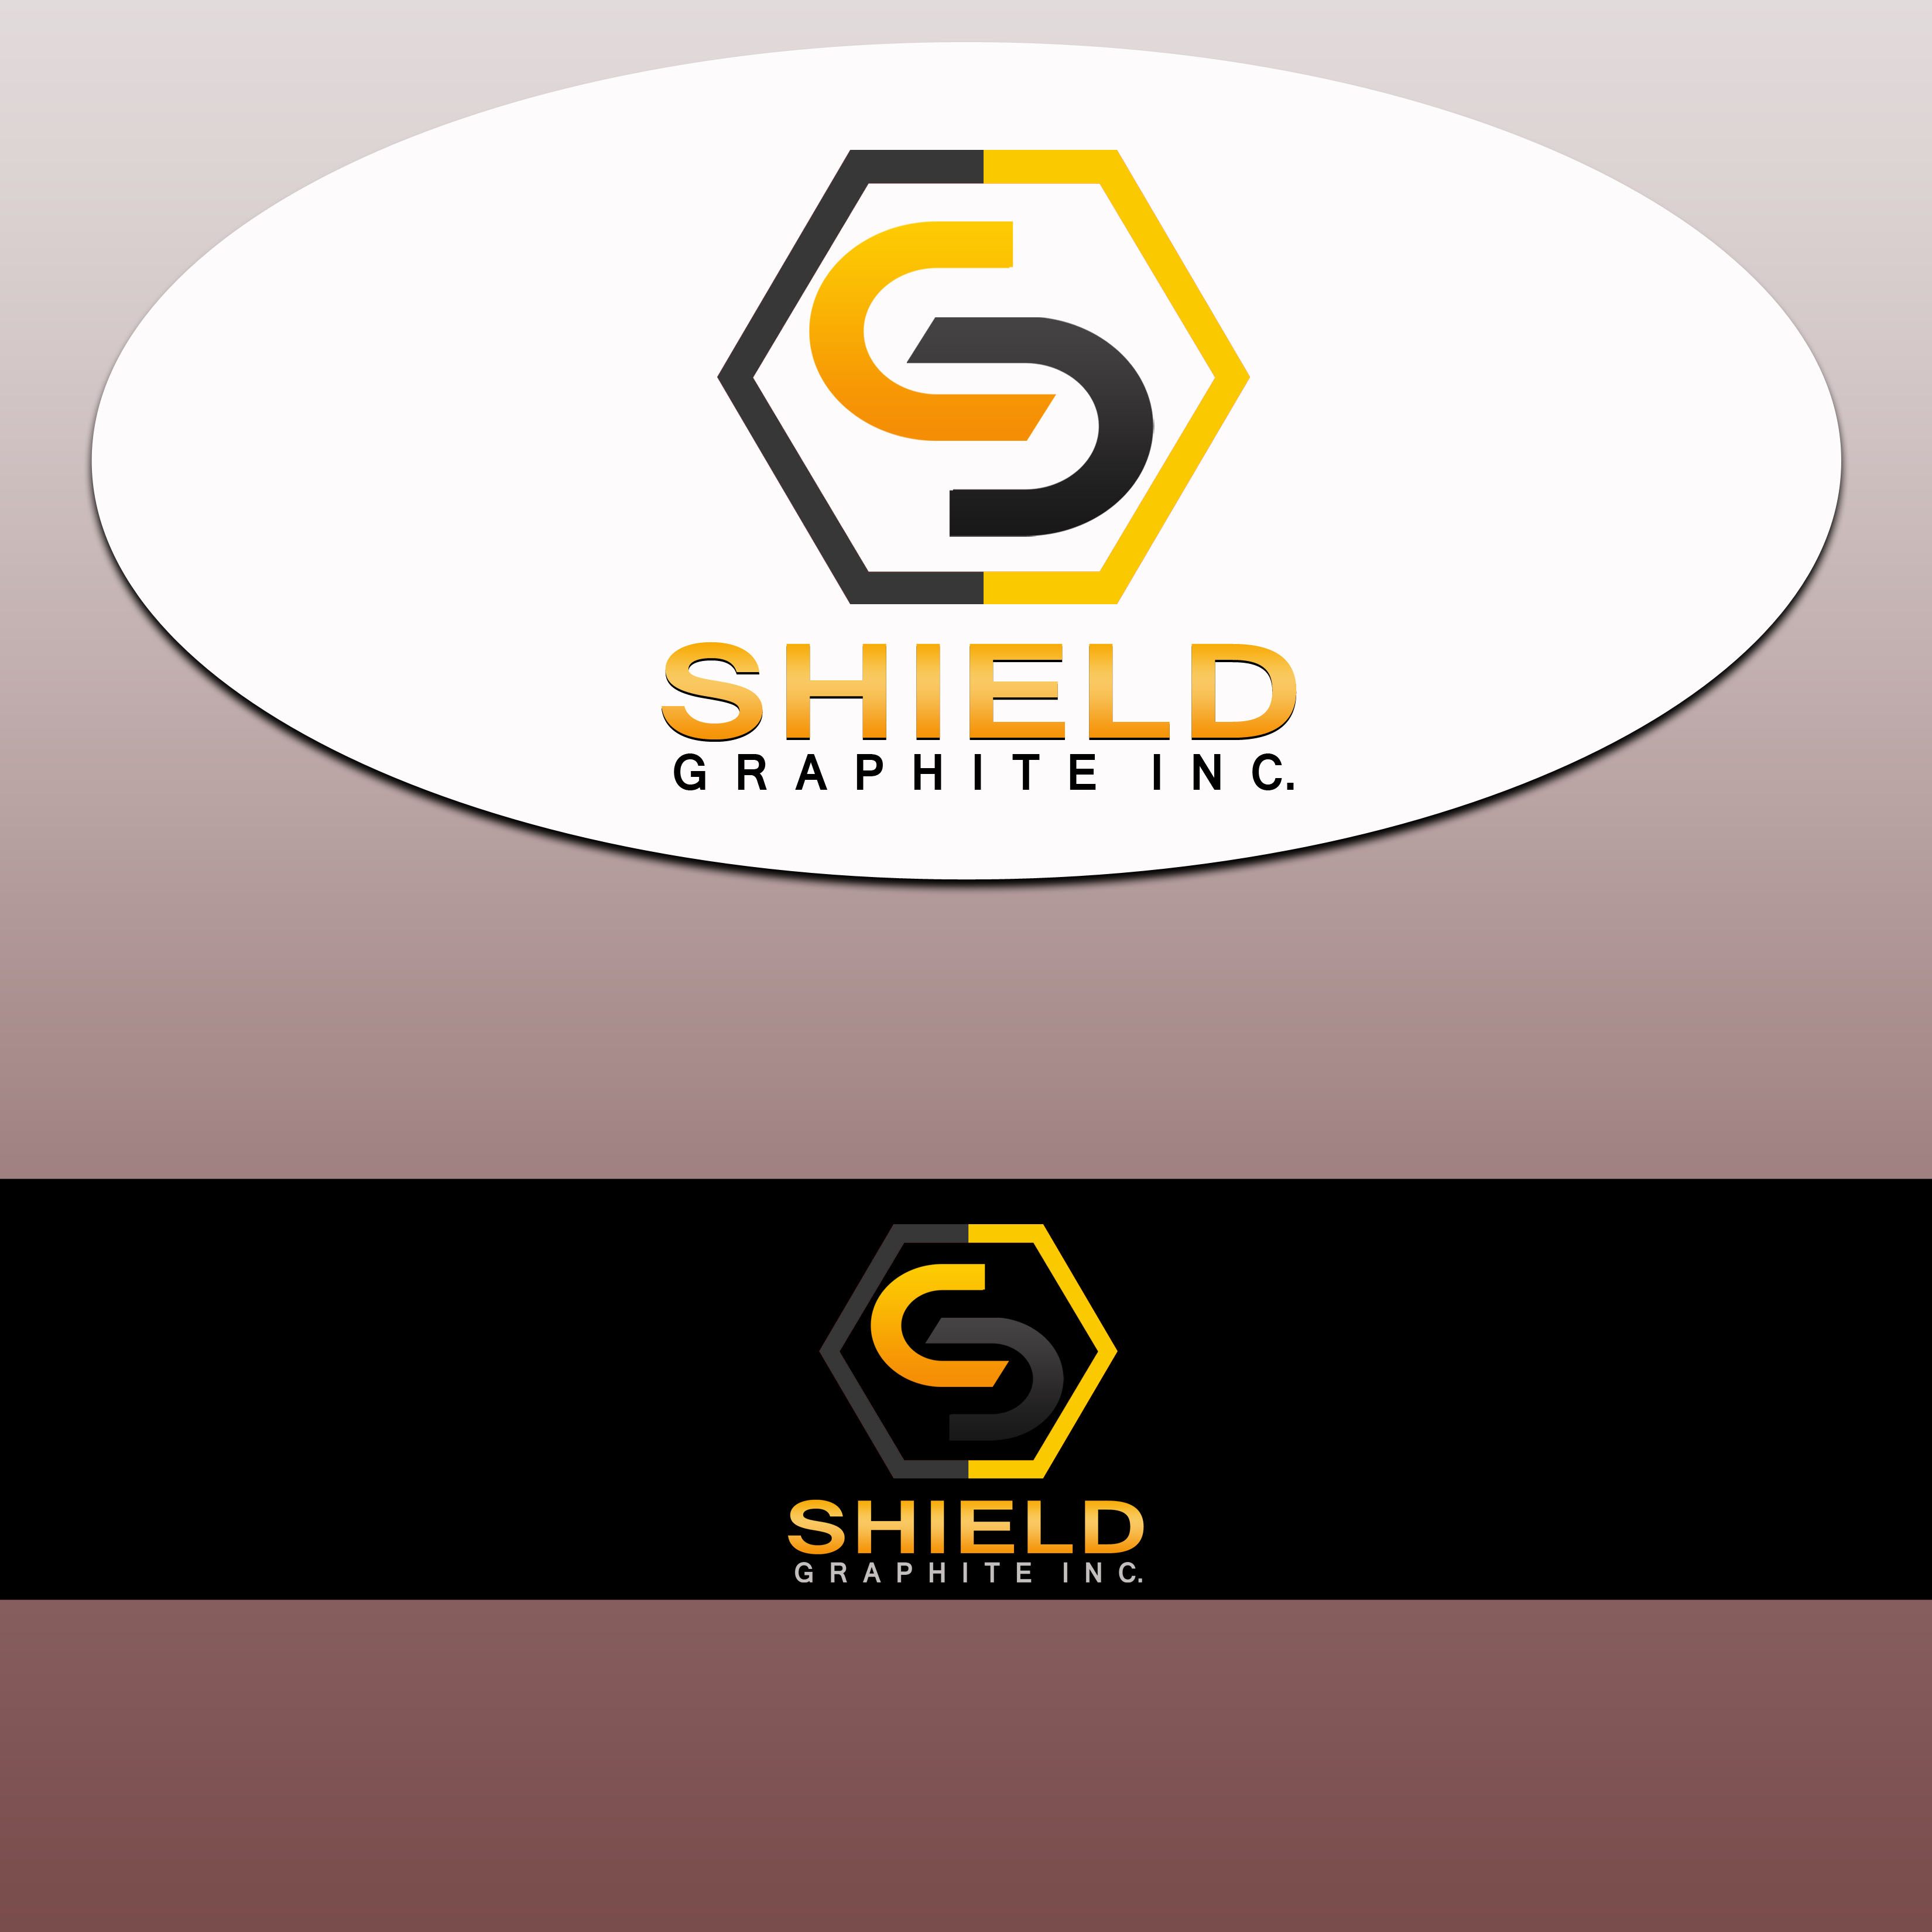 Logo Design by Allan Esclamado - Entry No. 35 in the Logo Design Contest Imaginative Logo Design for Shield Graphite Inc..